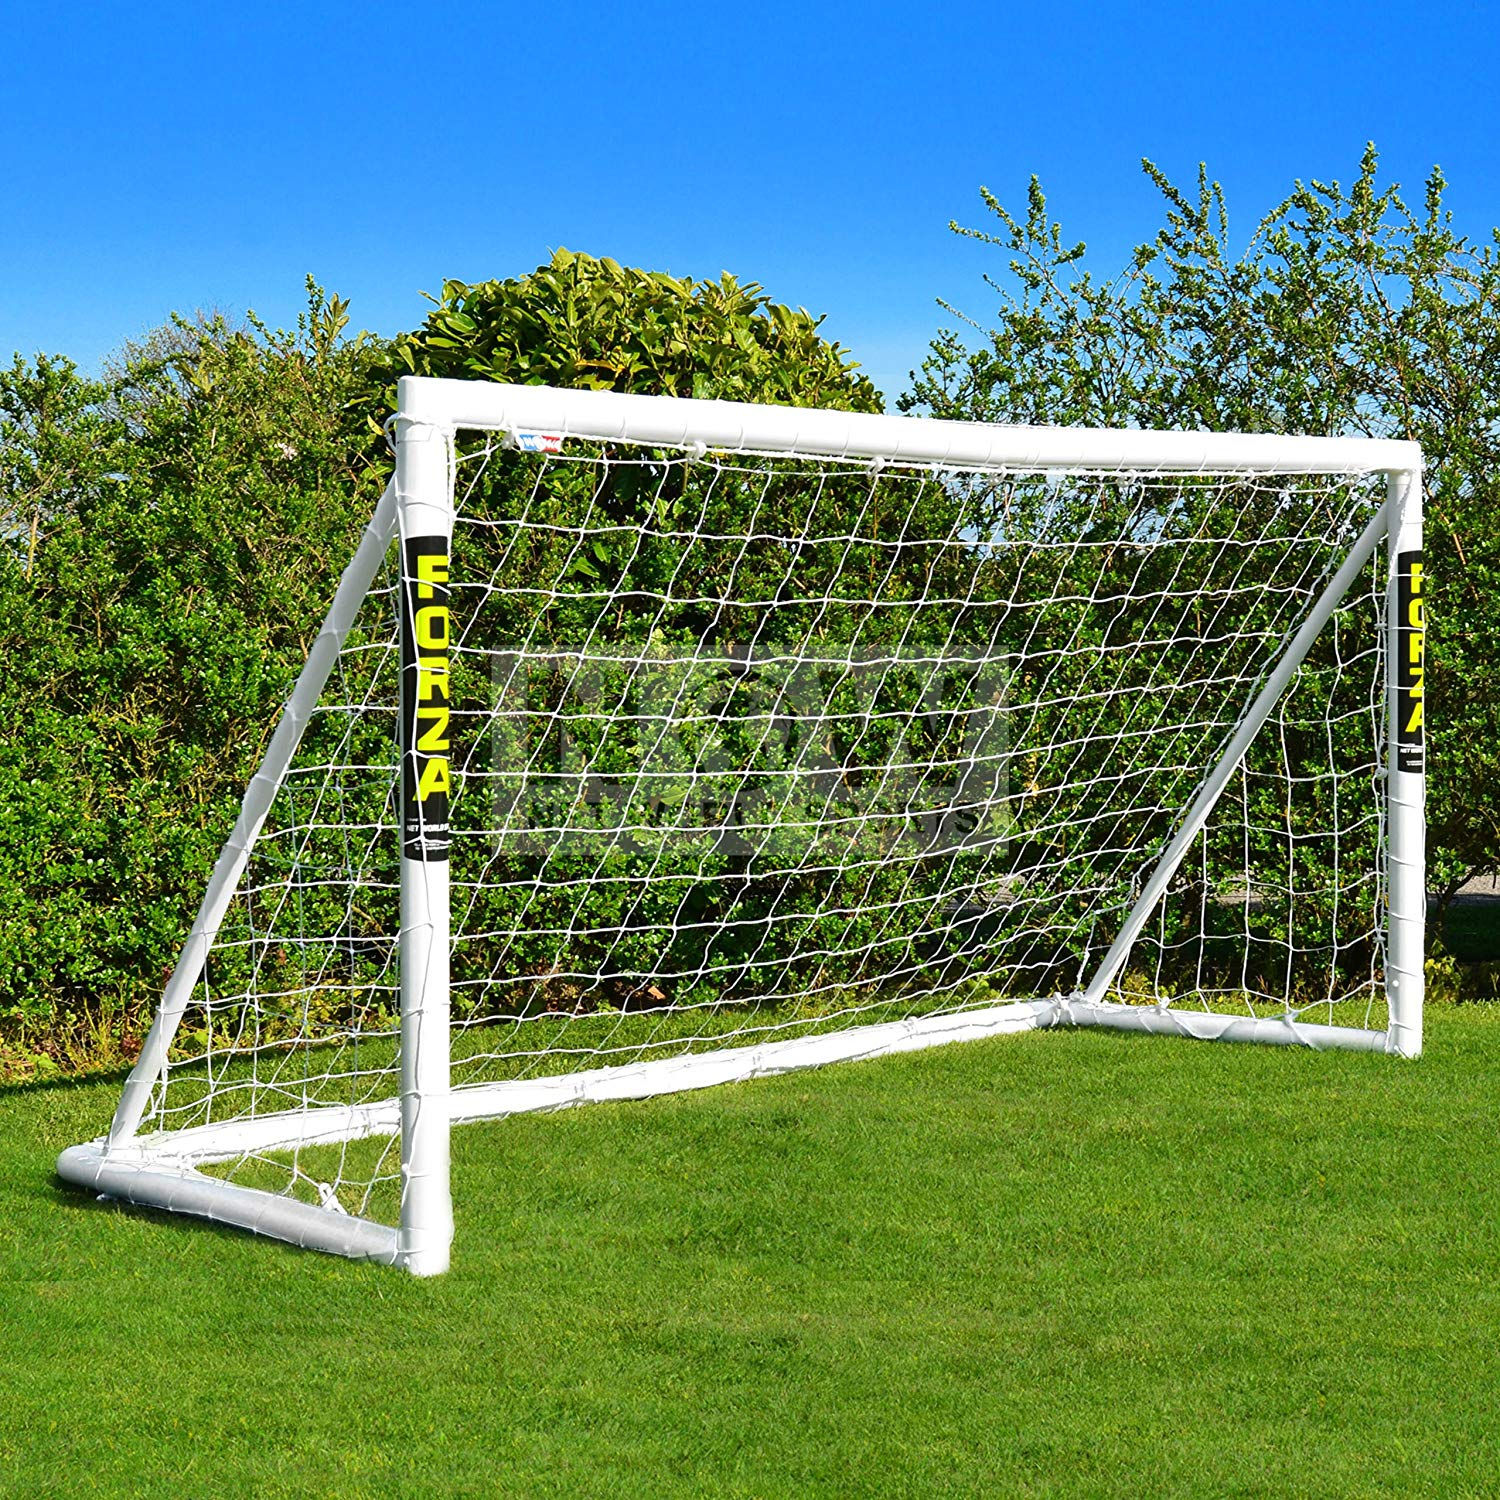 4f0b9a909 Get Quotations · FORZA 8' x 4' Soccer Goal - The ultimate soccer goal!STRONGEST  GOALS